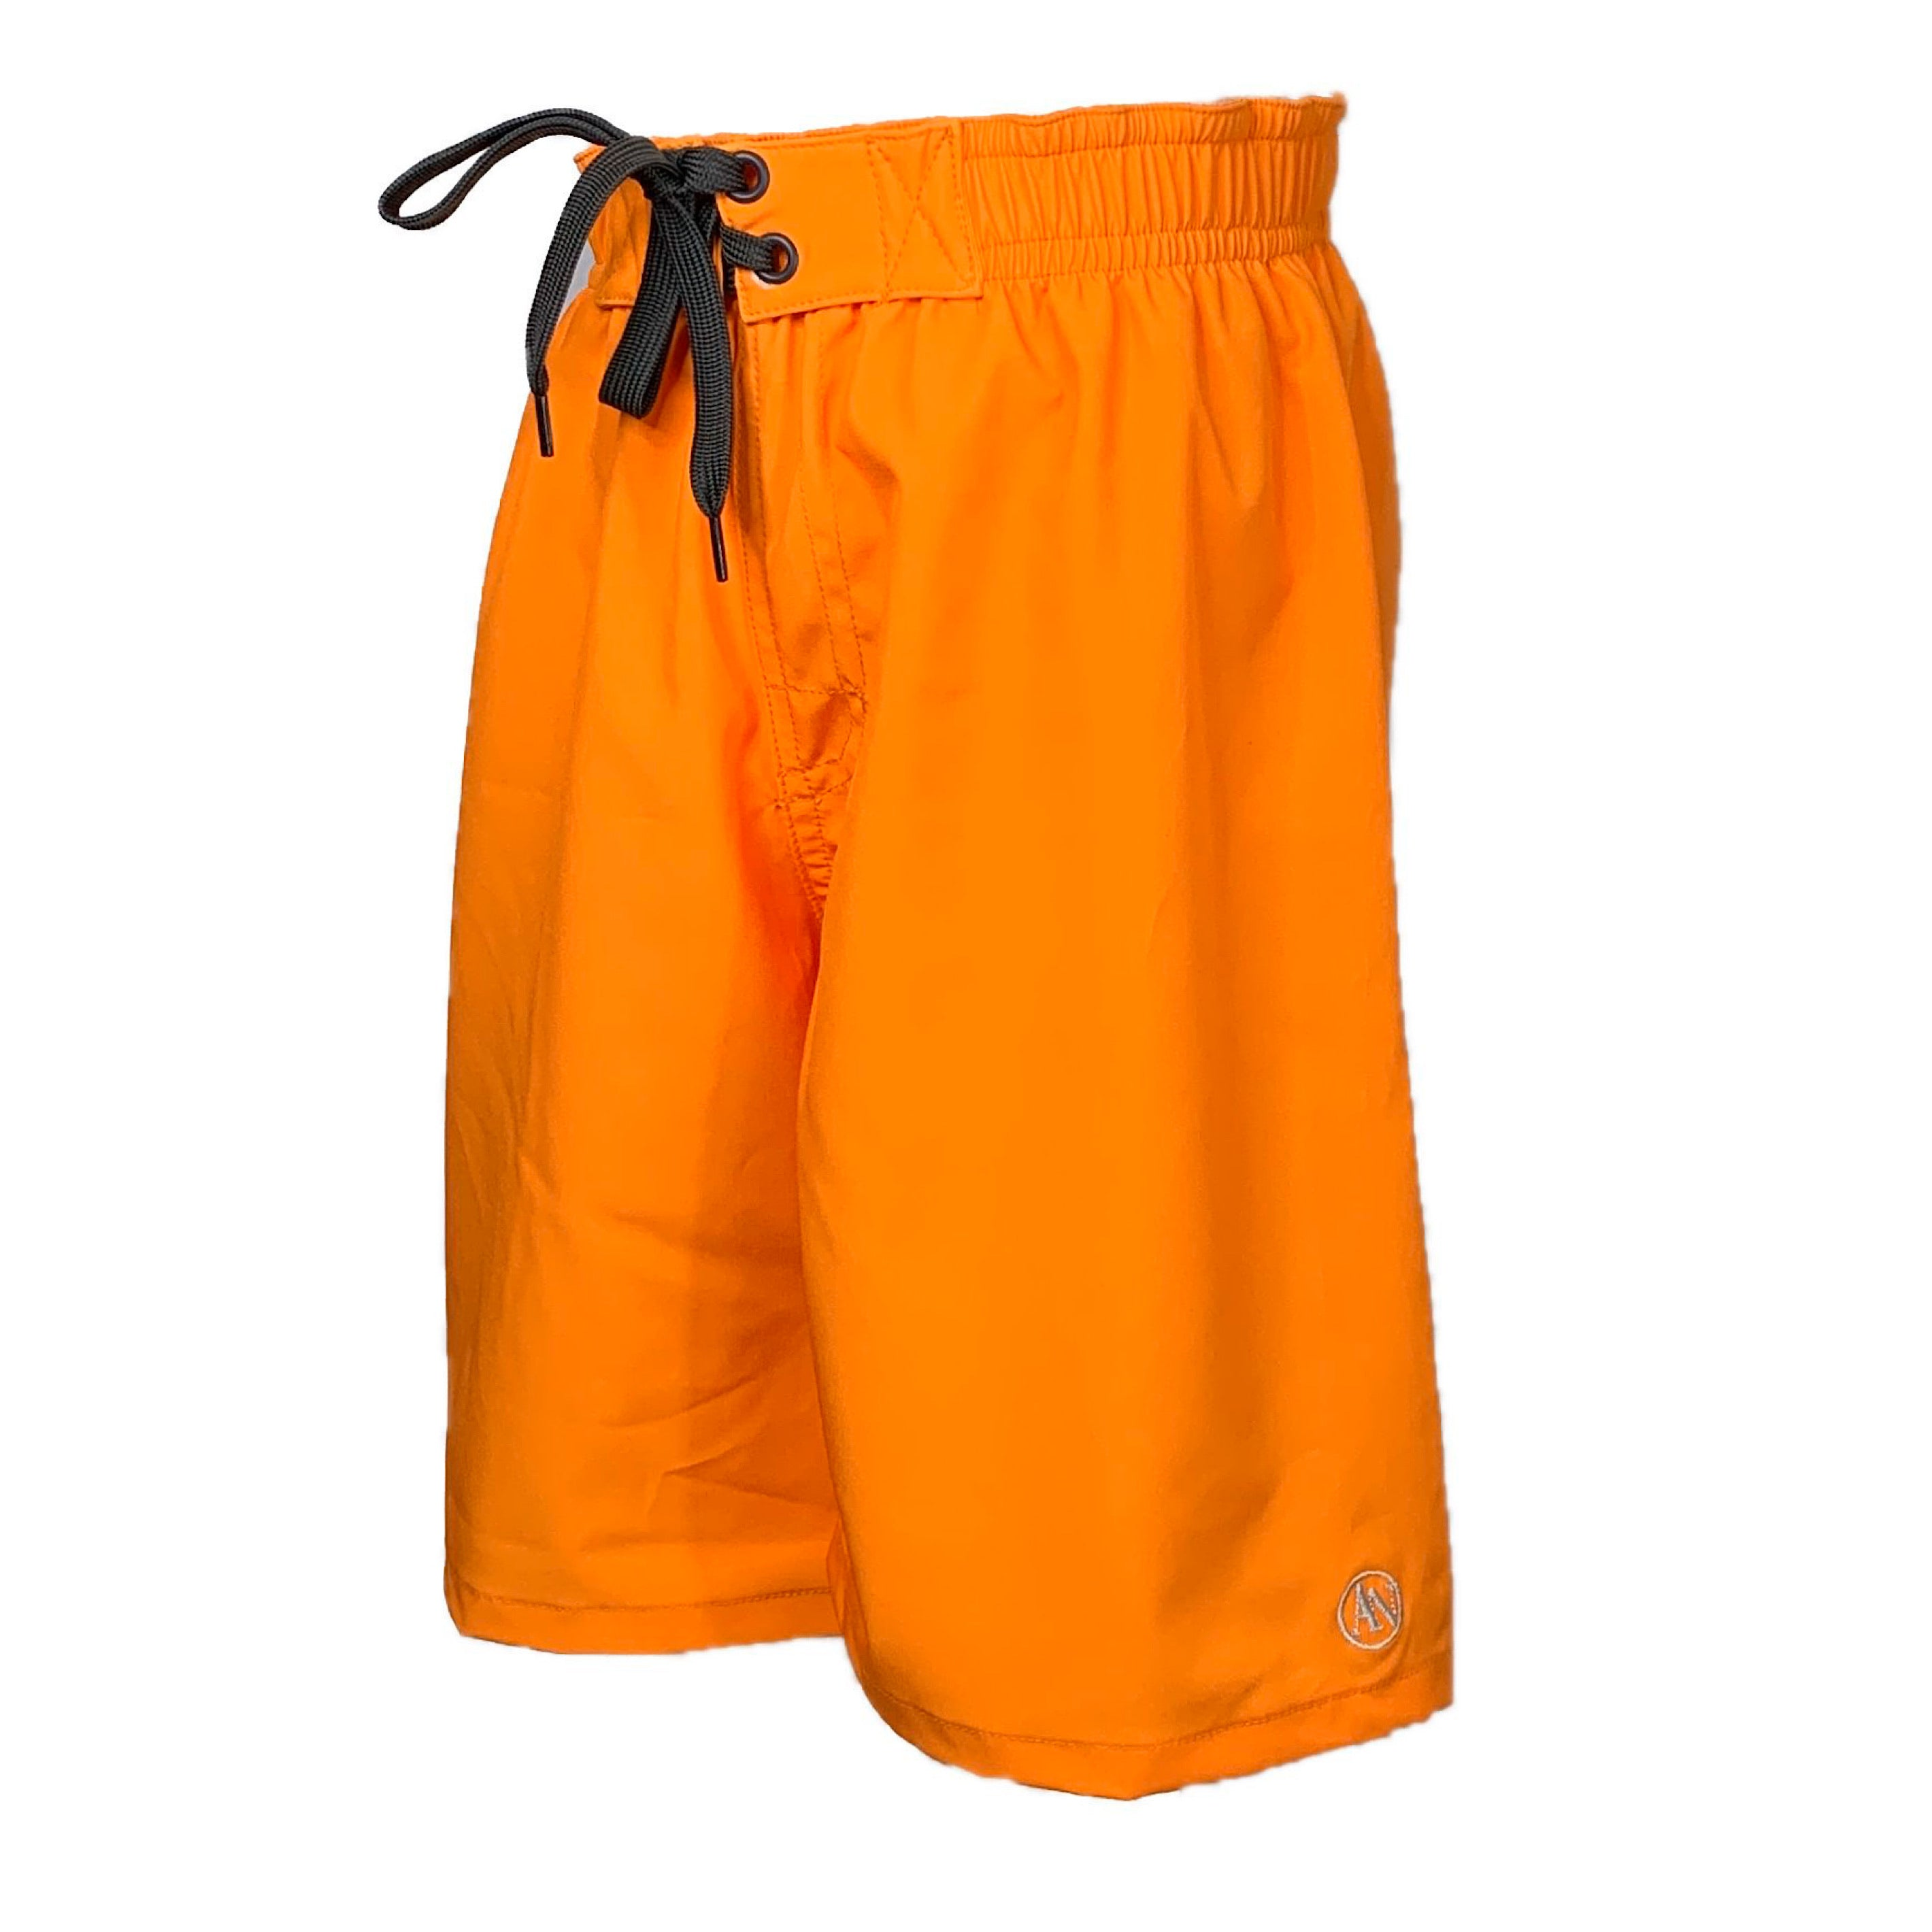 Musa Swim Trunks for Boys